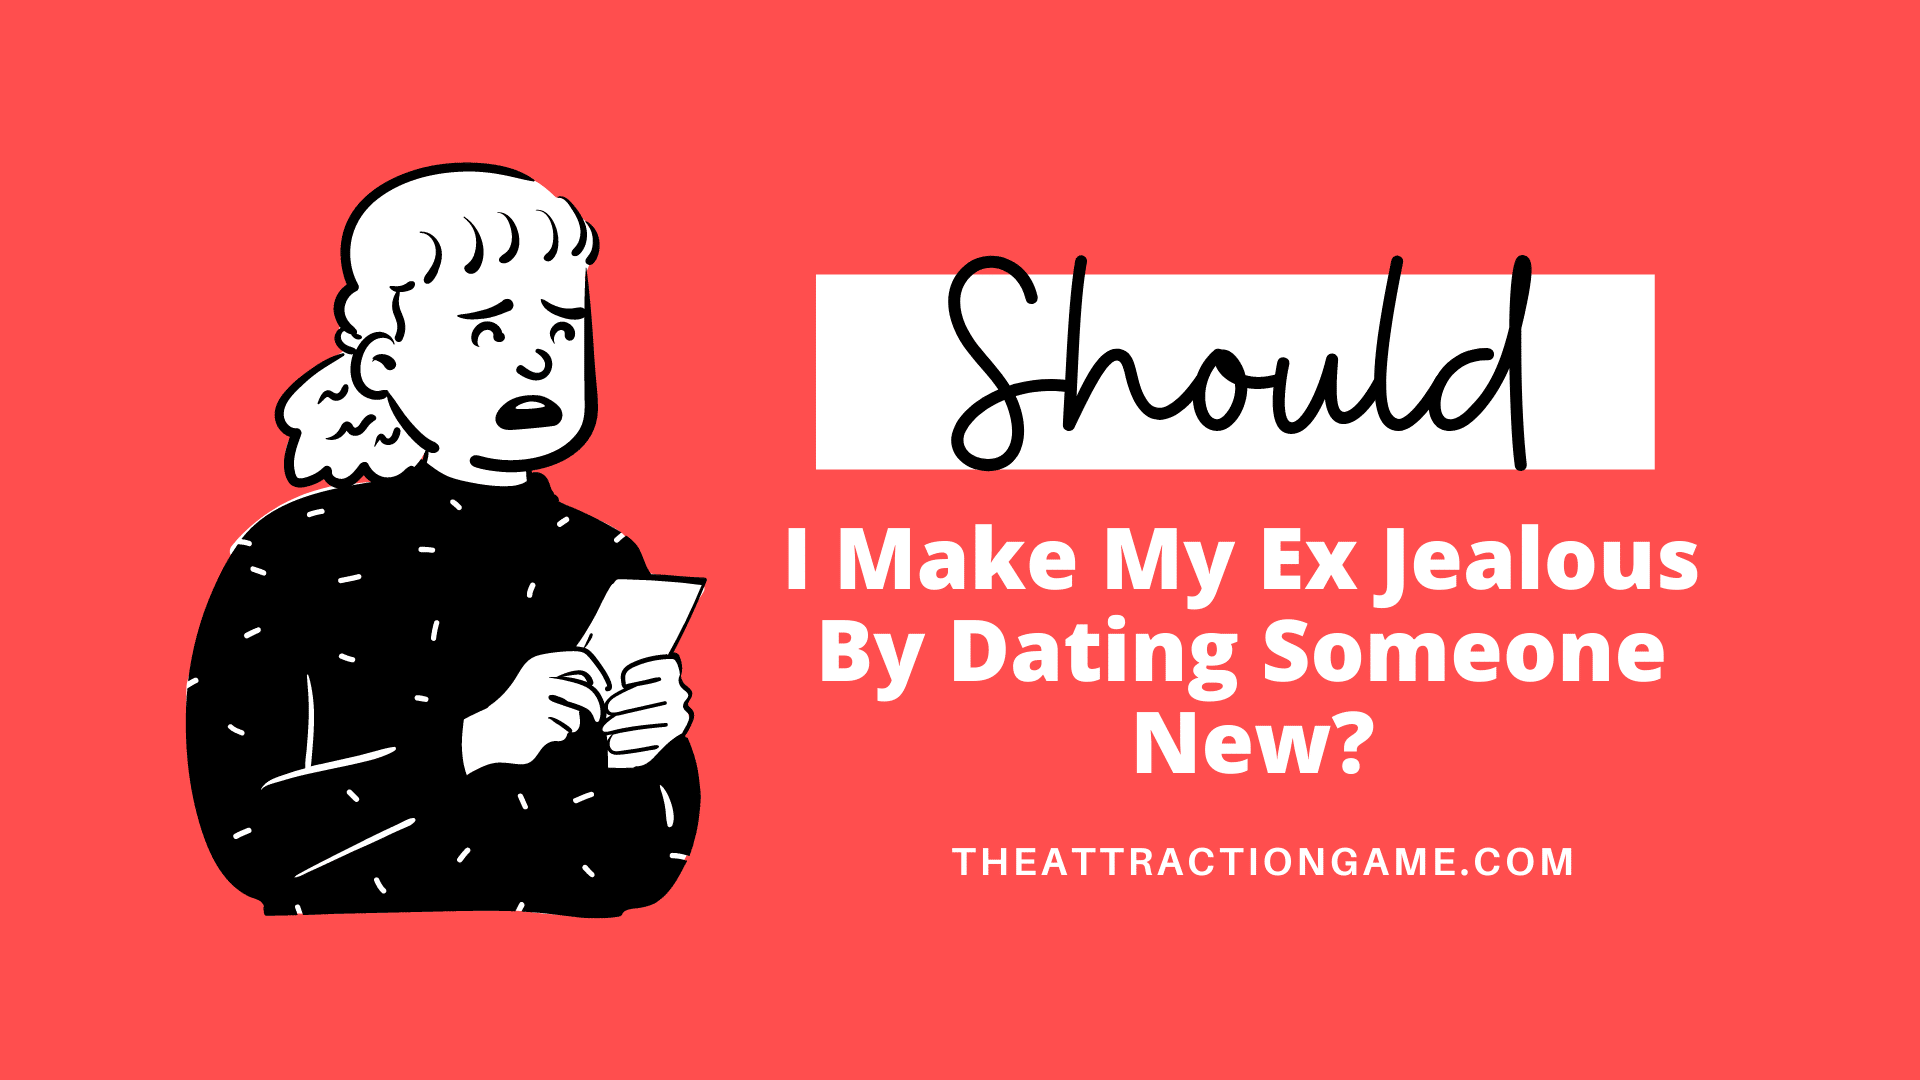 should I make my ex jealous by dating someone new, make your ex jealous, should you make your ex jealous, dating someone new to make your ex jealous